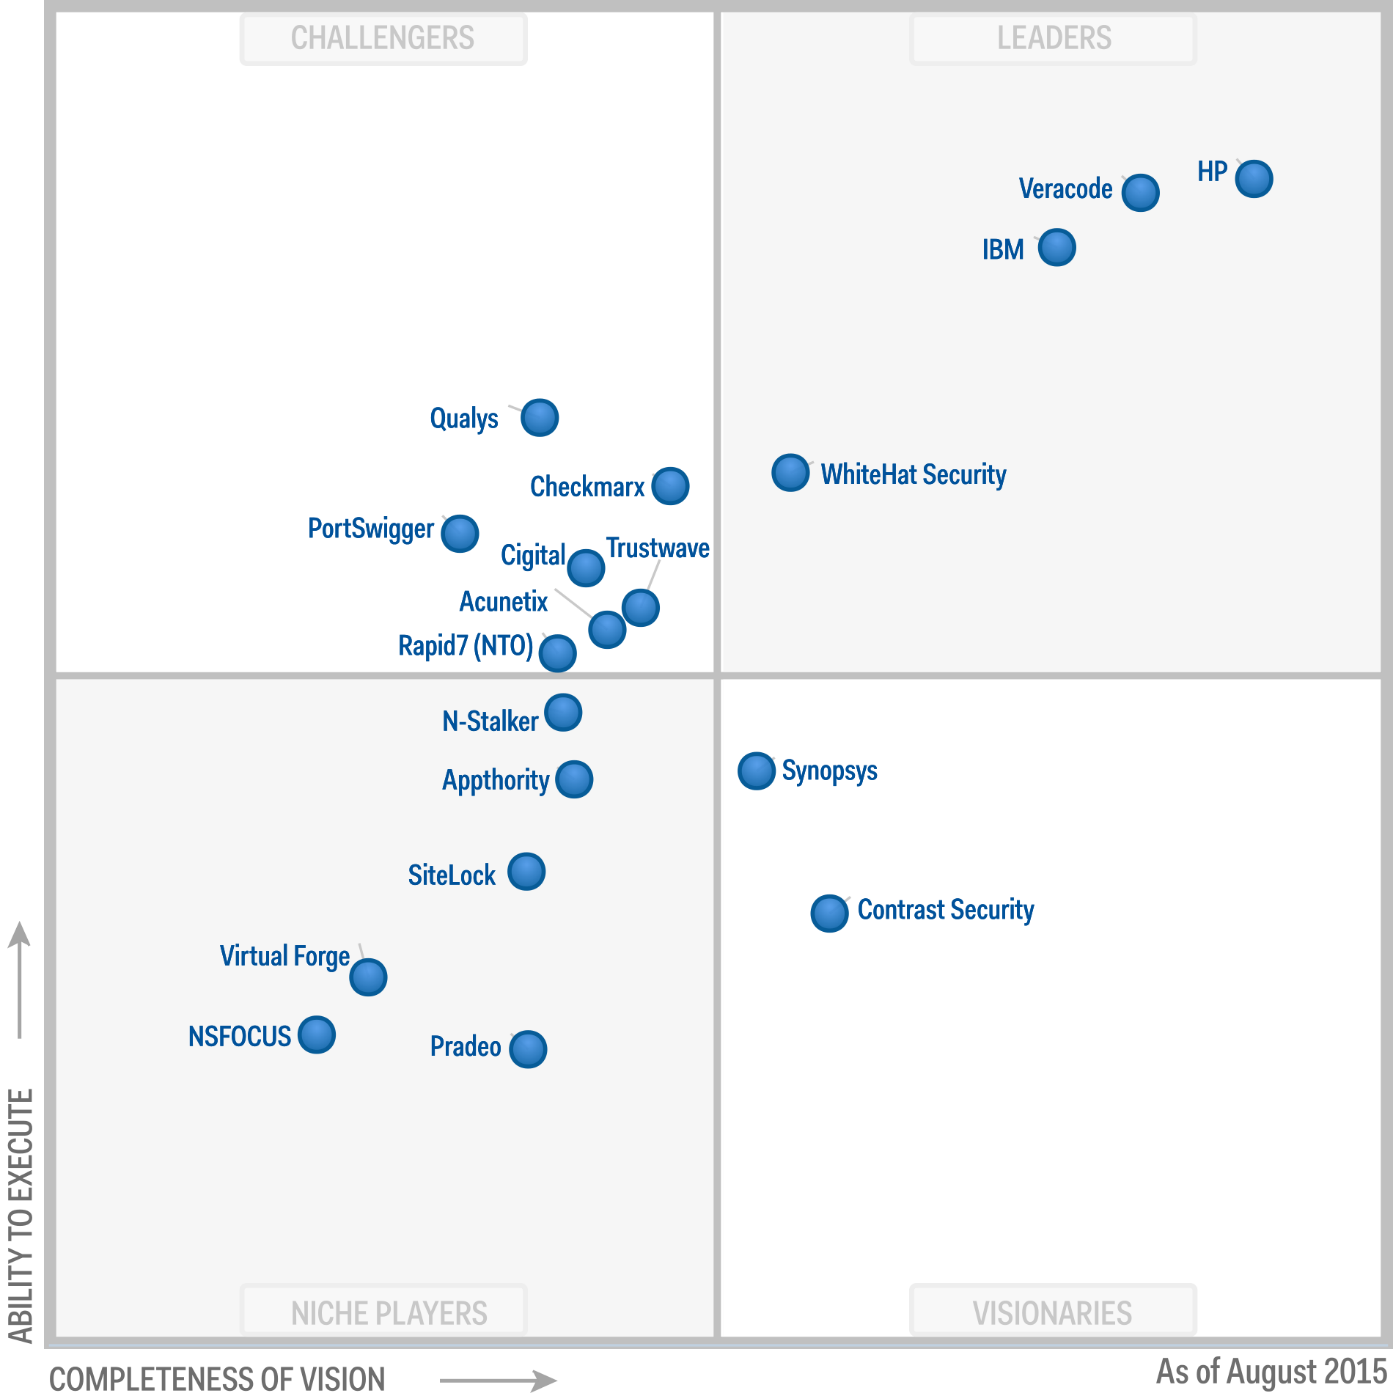 Magic Quadrant for Application Security Testing 2015 (G00268424)